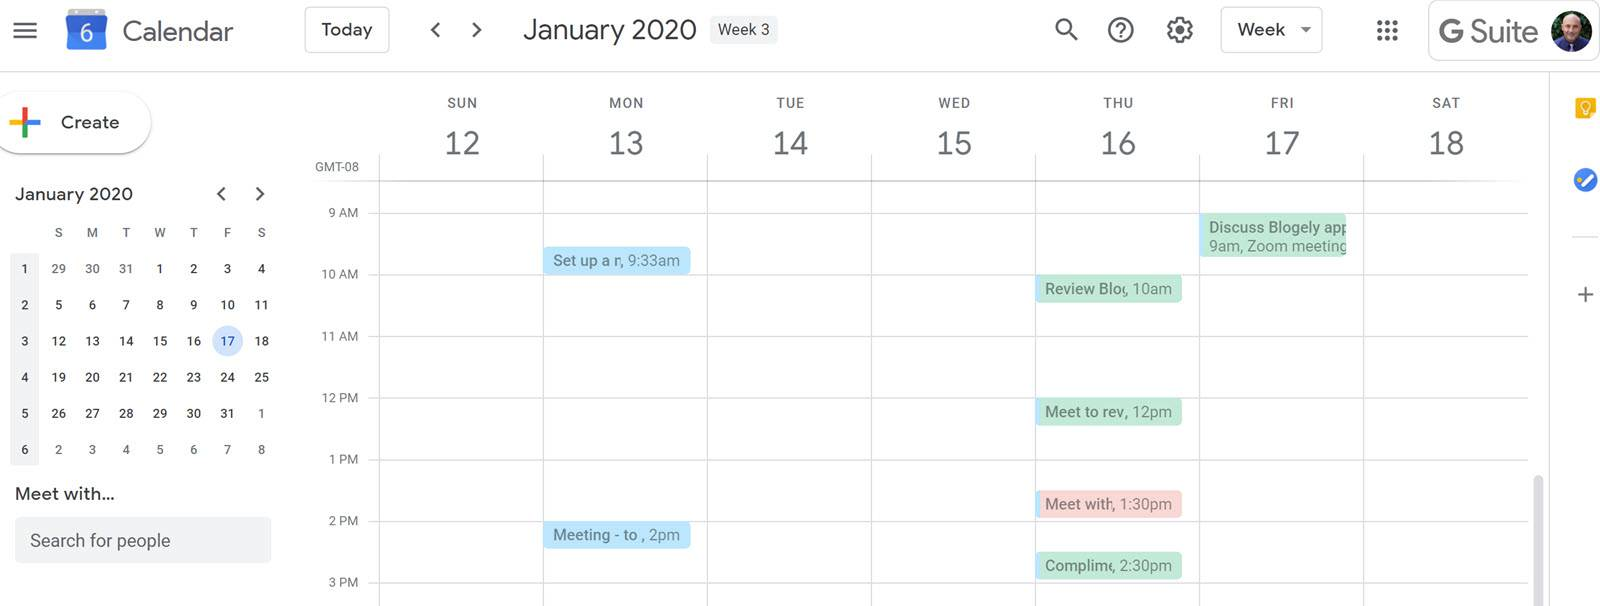 Best Content Calendar Tools for Blog Planner Google Calendar